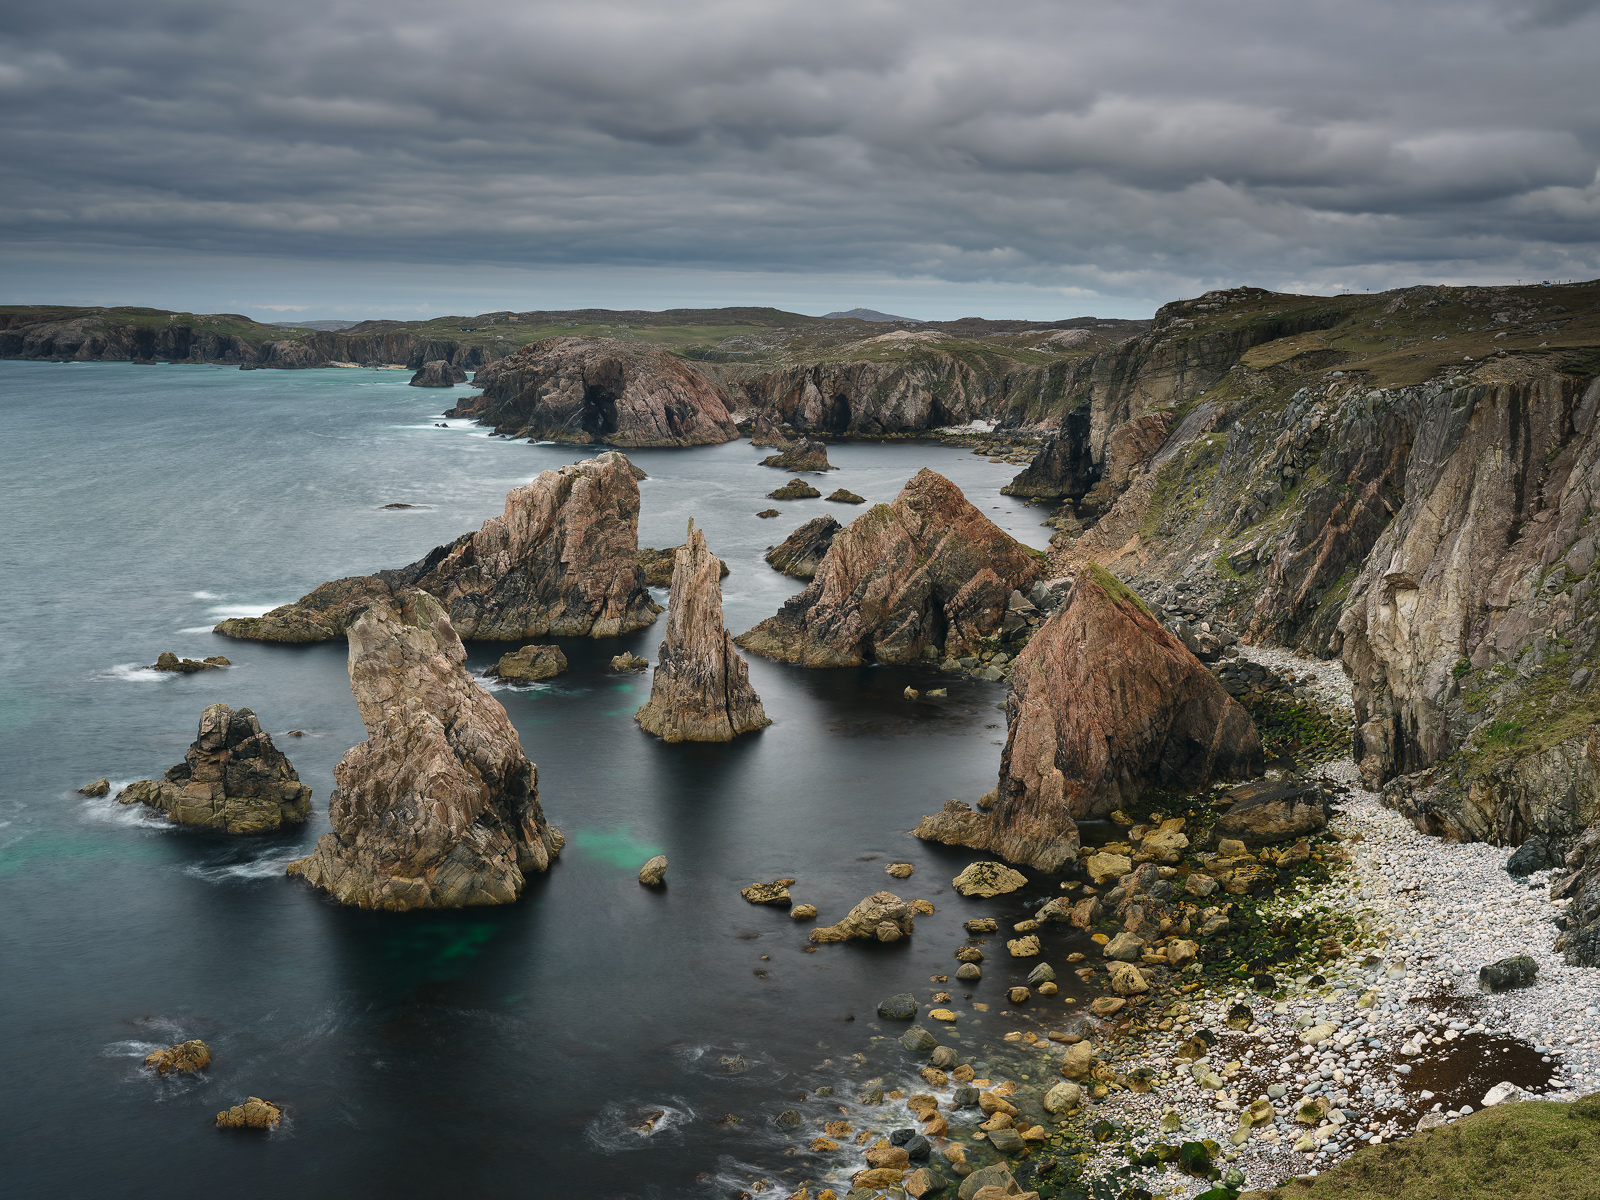 The vicious looking stacks at Mangerstadh on Lewis are very dramatic particularly when a huge west coast sea crashes against them.